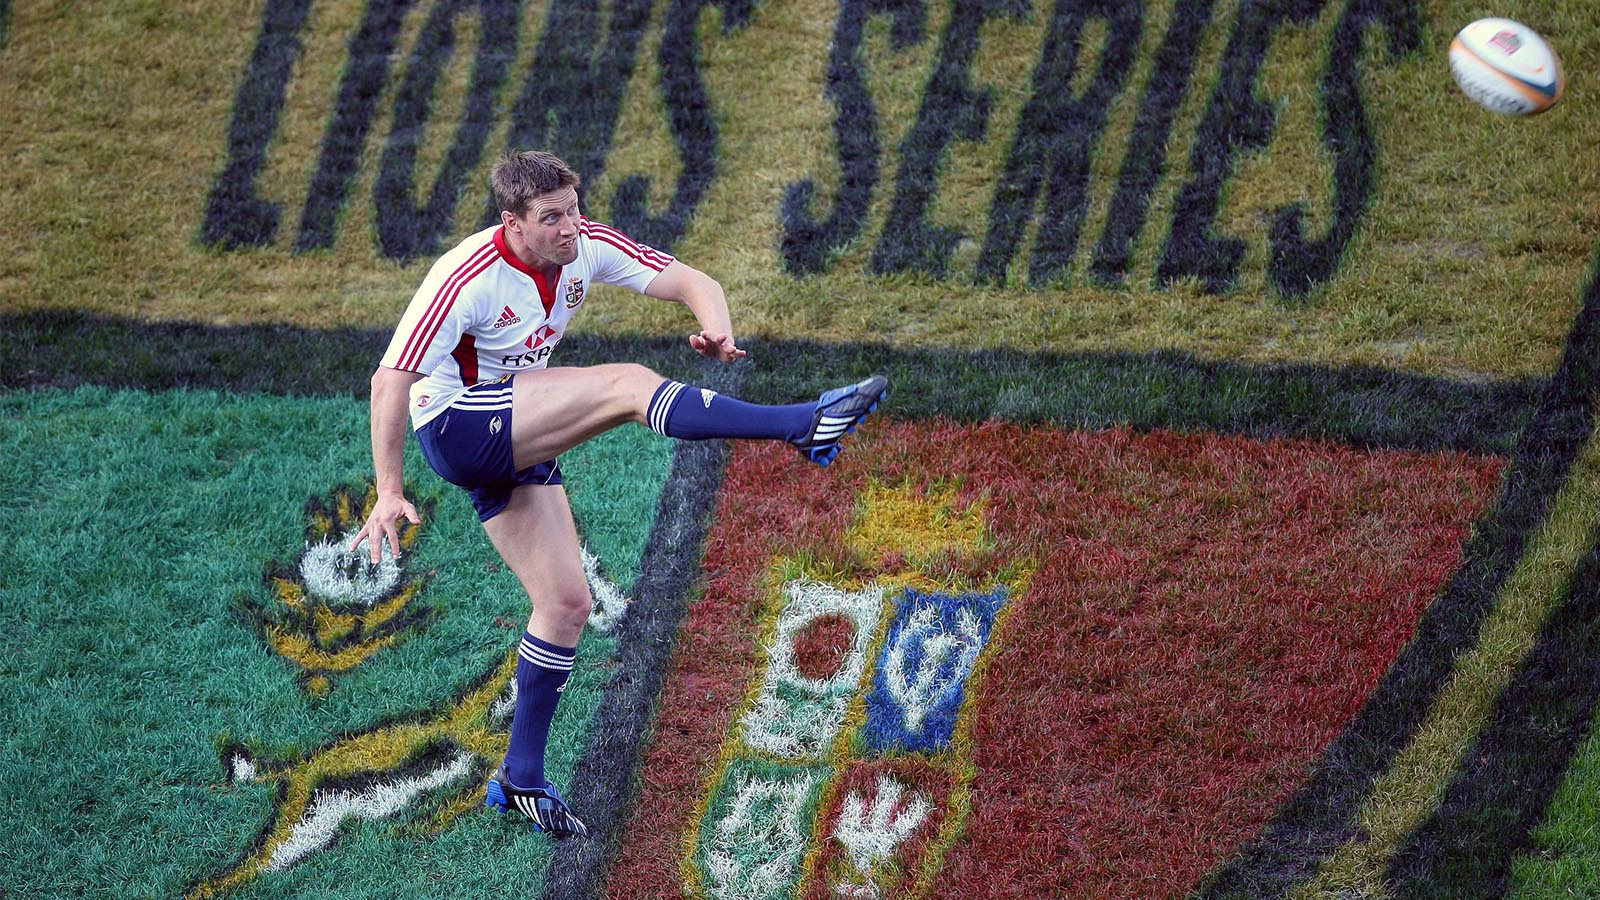 Ronan O'Gara inducted in World Rugby Hall of Fame